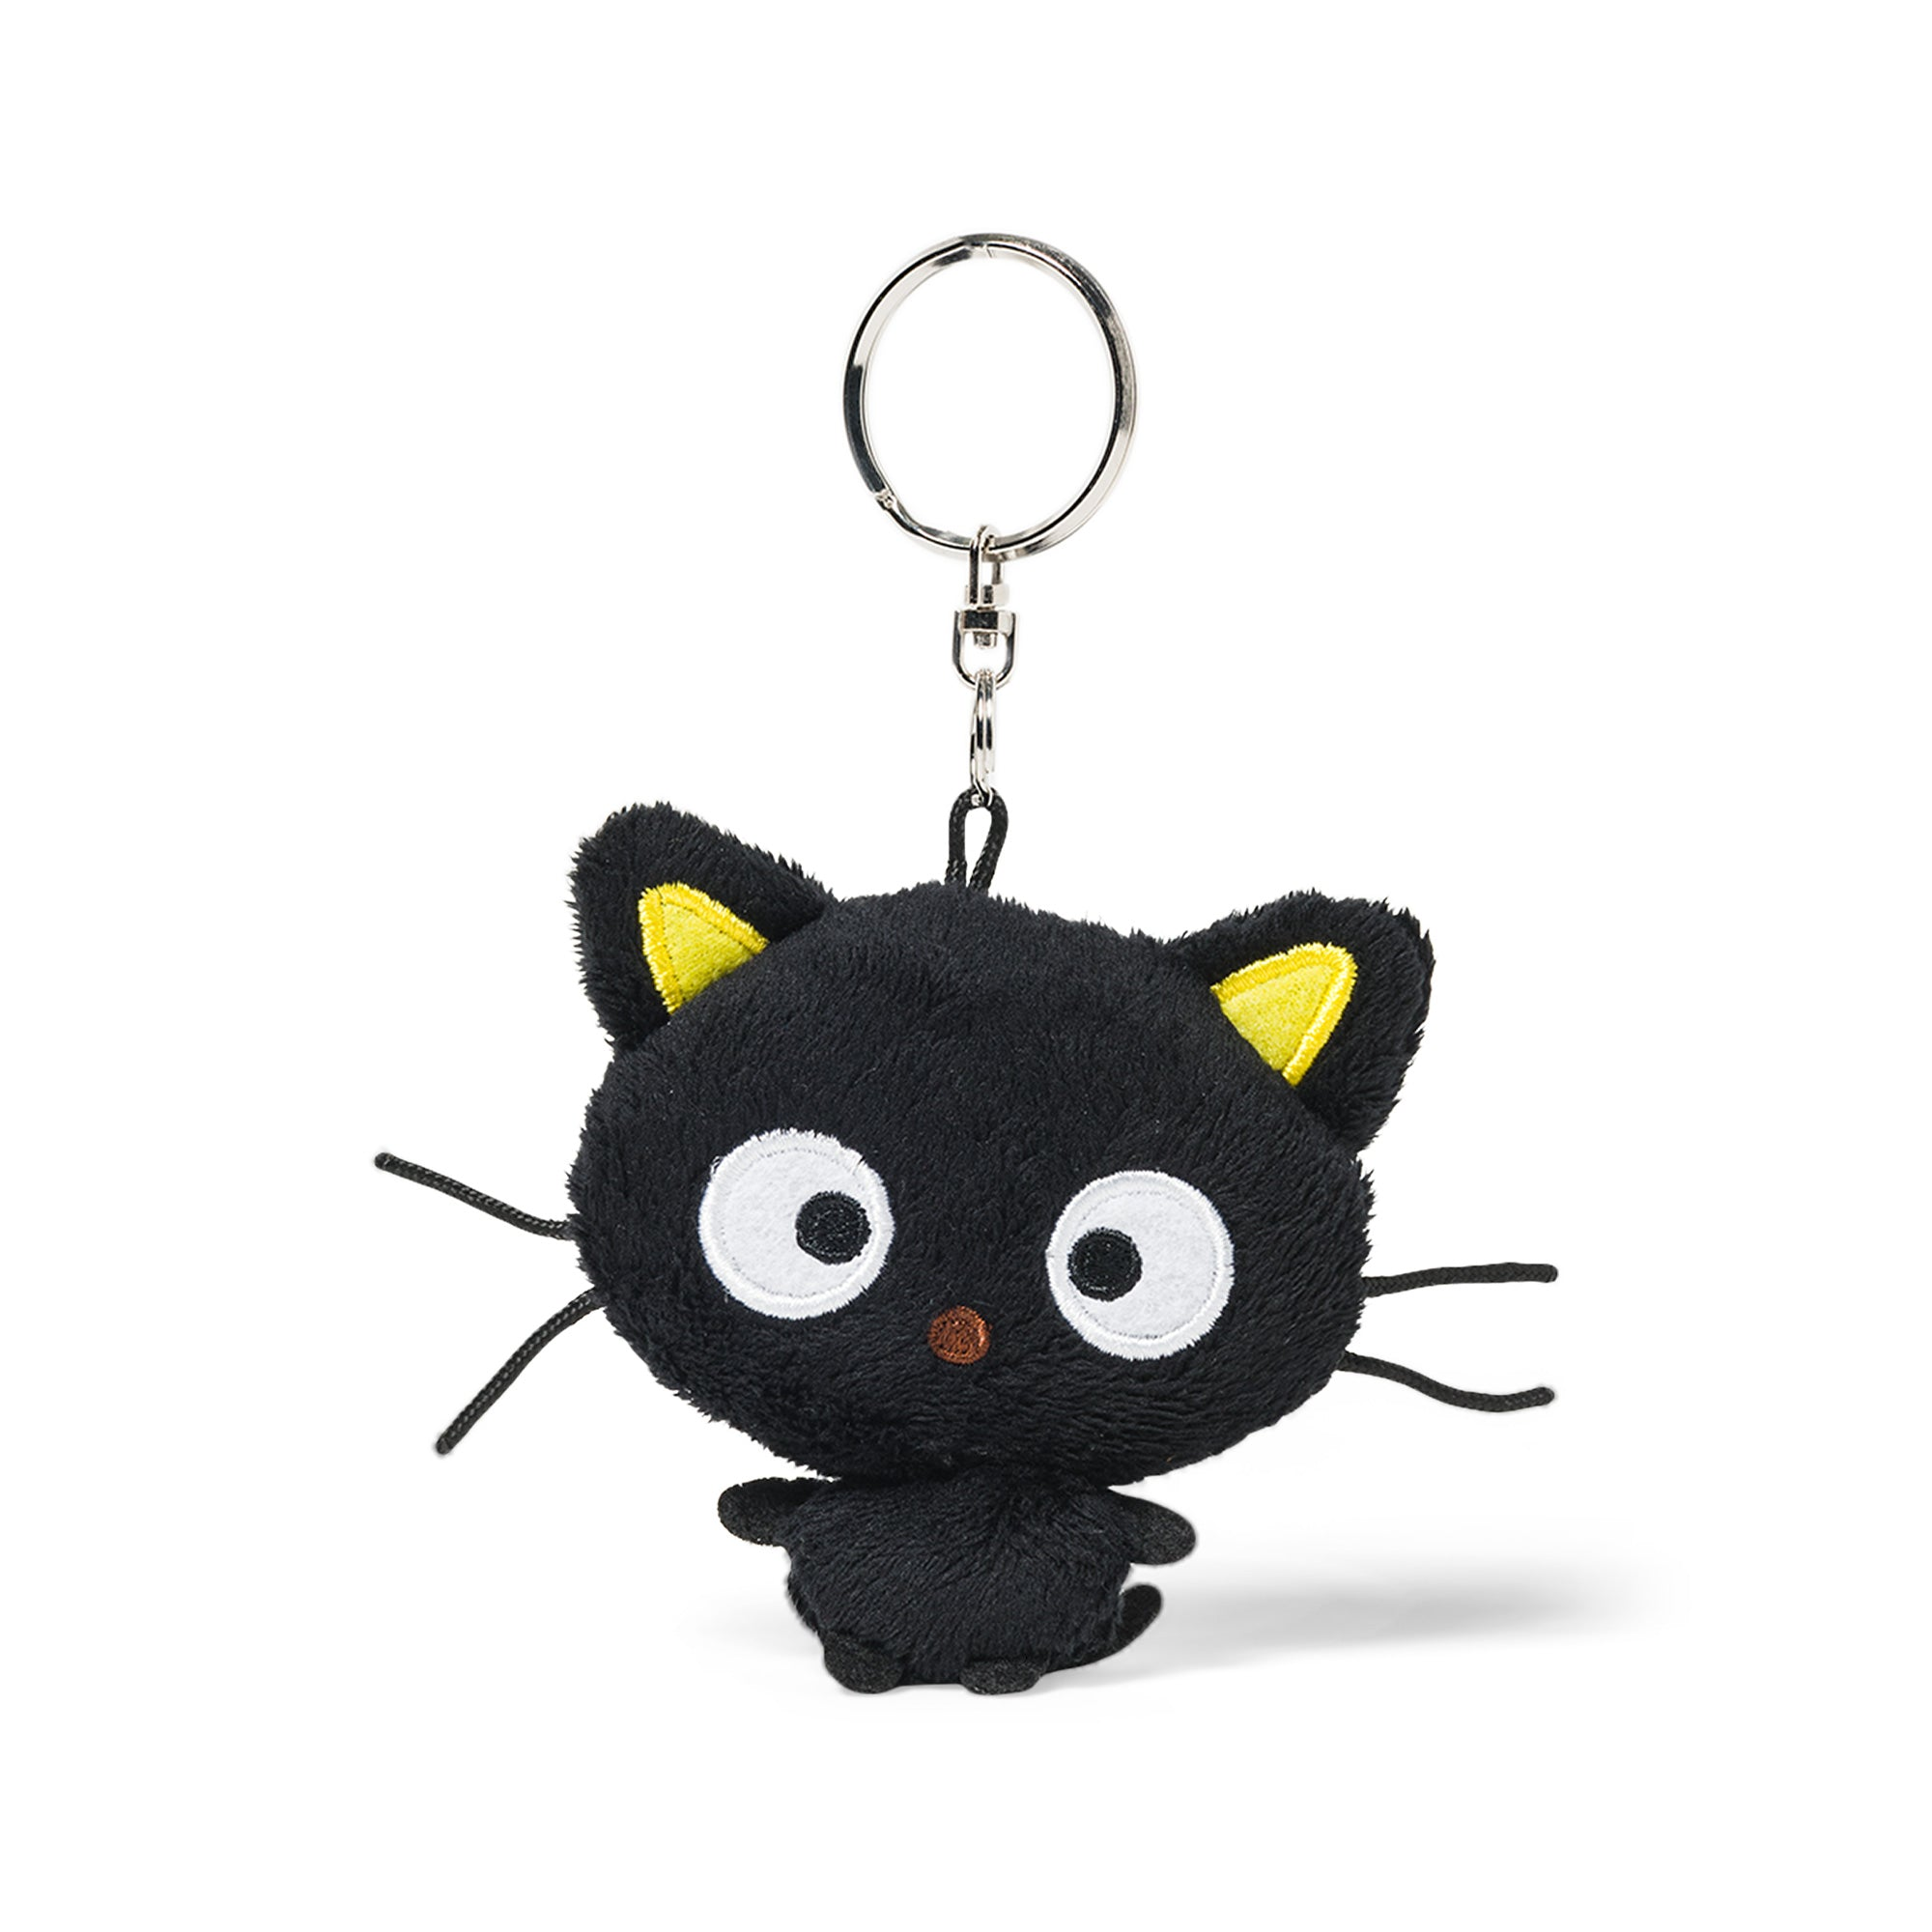 Chococat Mascot Plush Measuring Tape